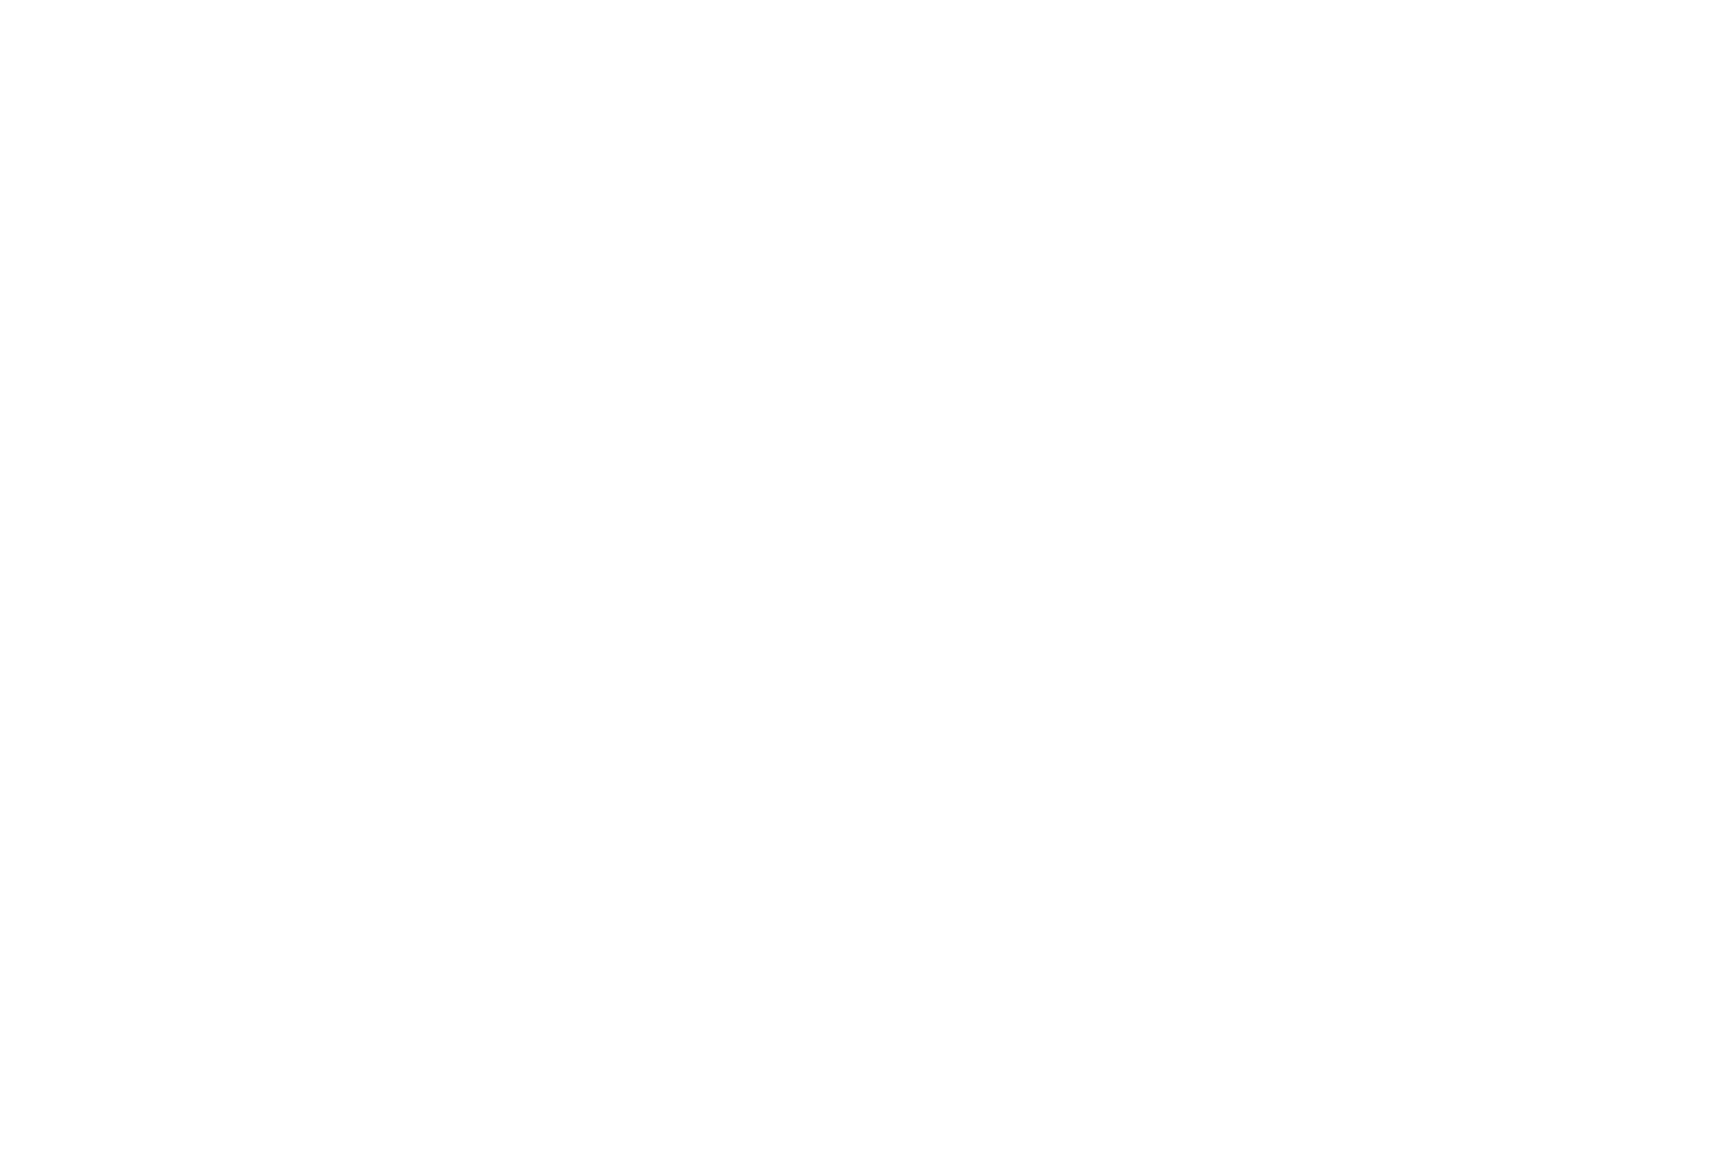 OFFICIAL SELECTION - Hollywood Dreams 4th Annual International Film Festival and Writers Competition - 2020